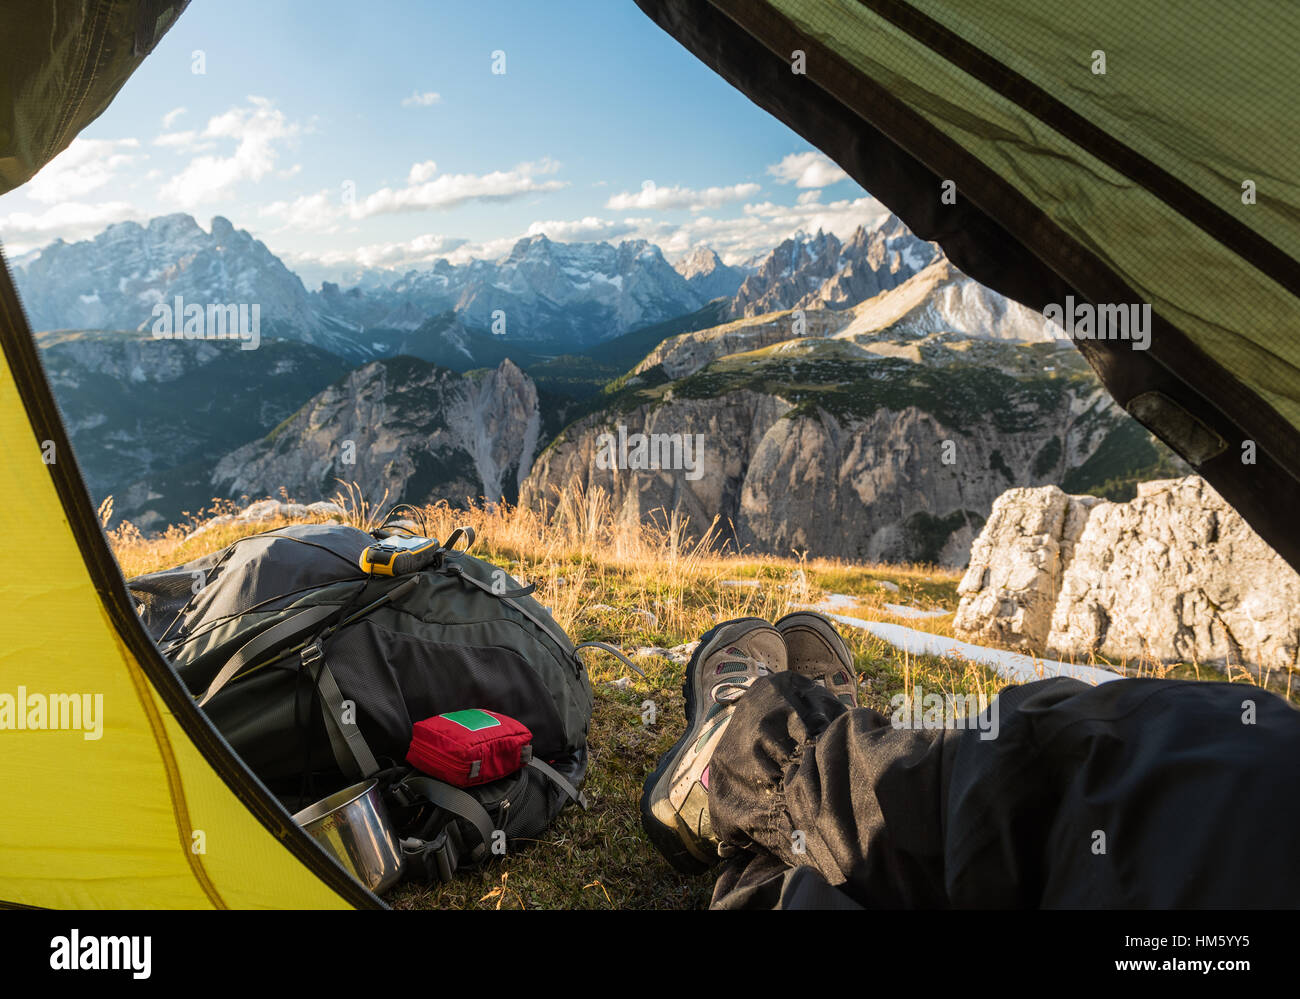 view from touristic tent to mountain valley, Dolomites, Italy - Stock Image